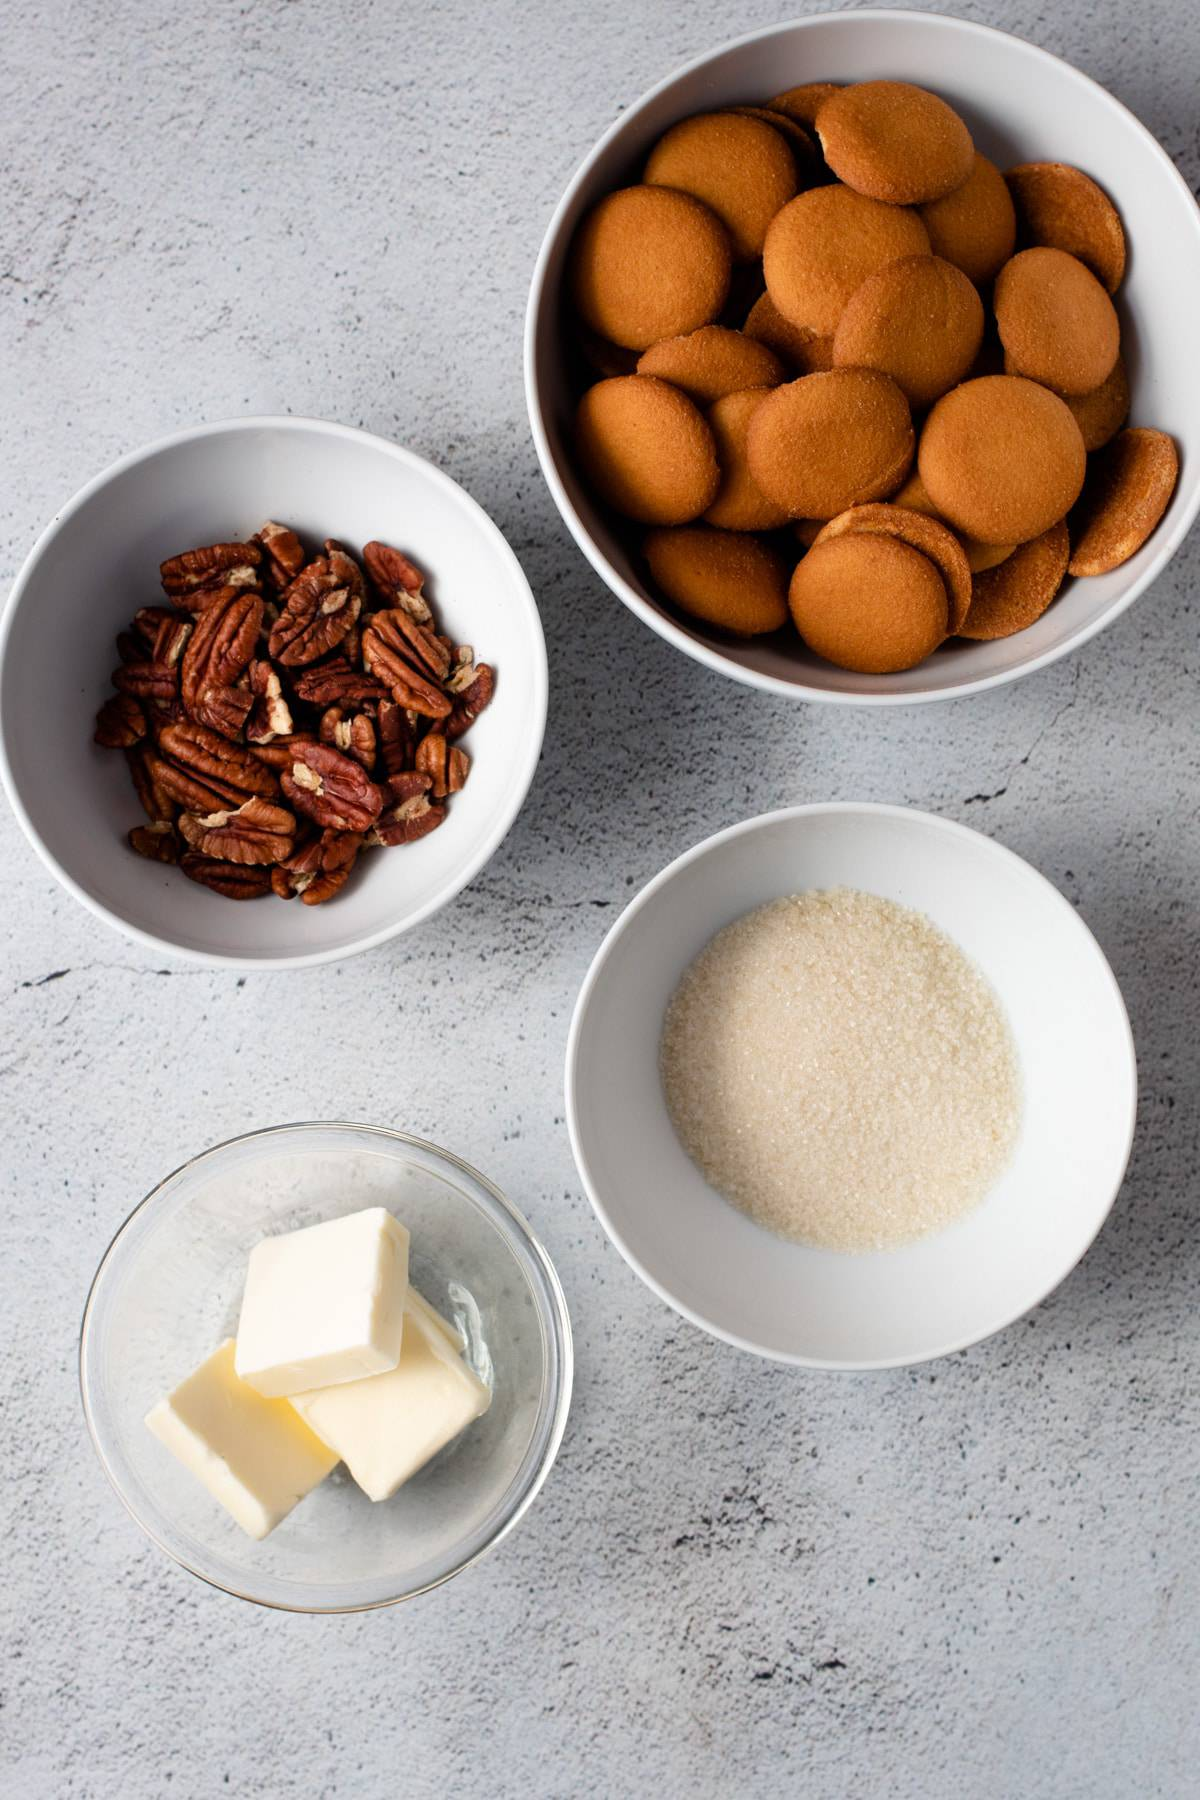 Ingredients for Nilla Wafer Crust